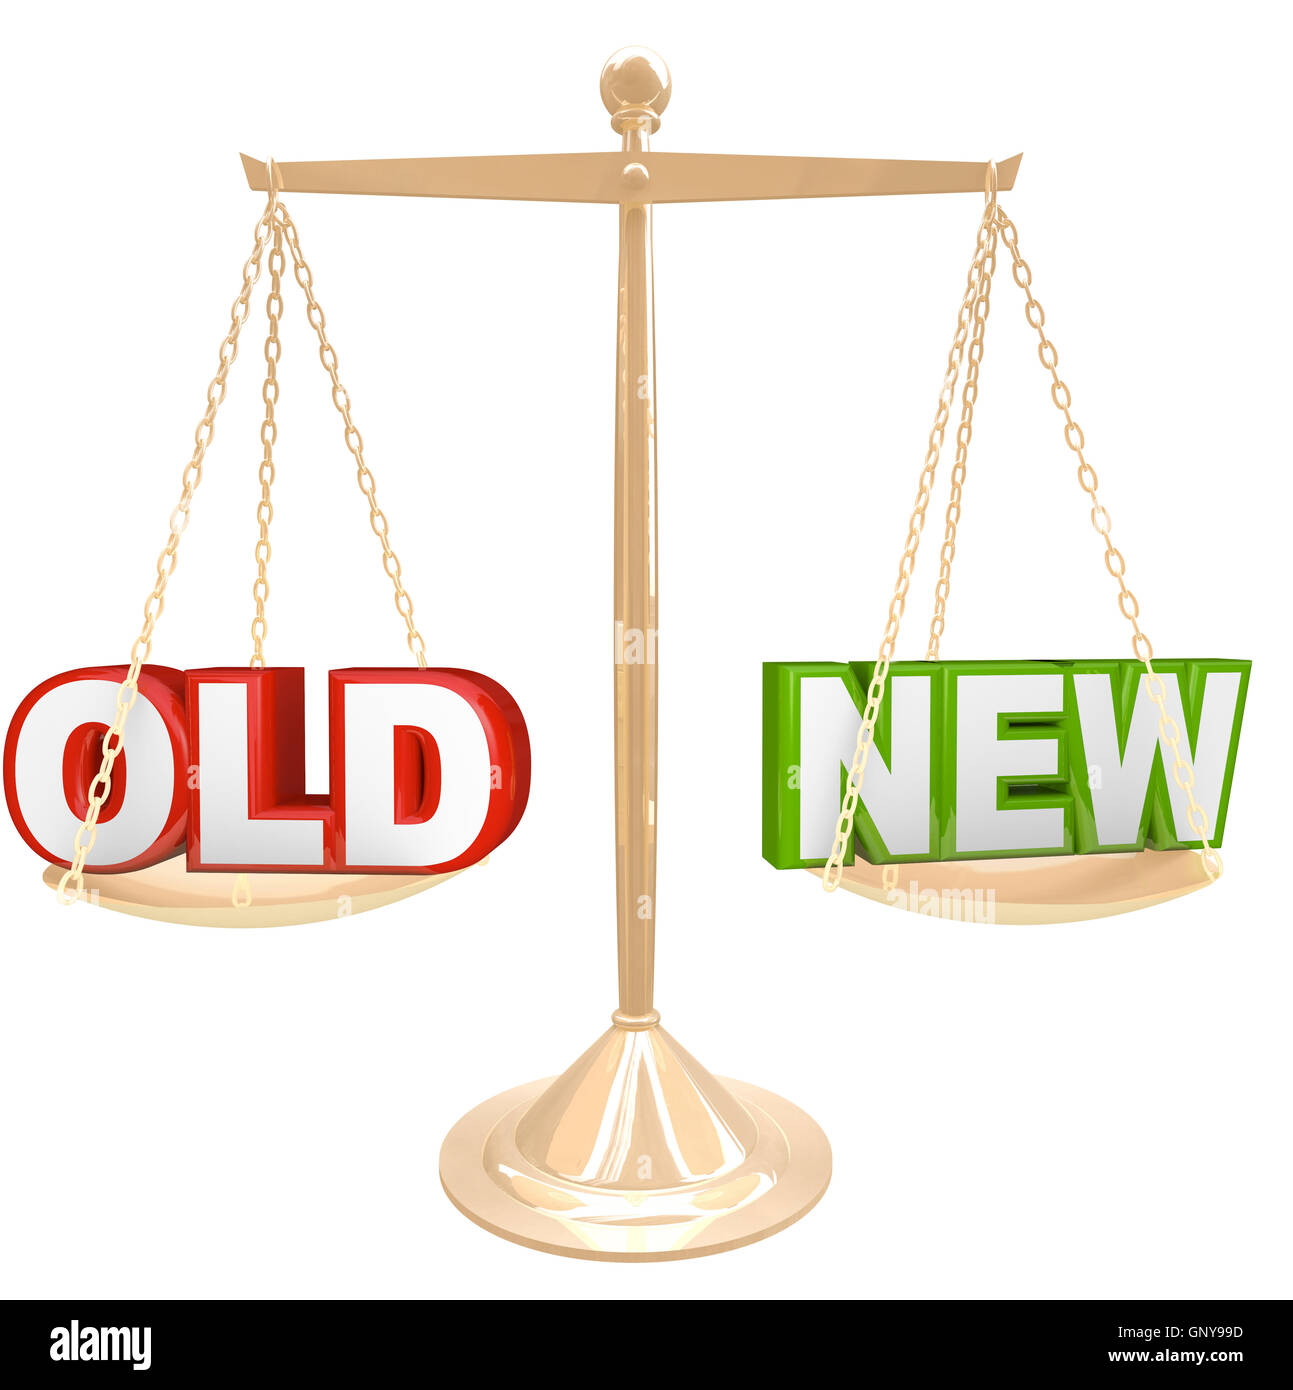 Old Vs New Words on Balance Scale Weighing Comparison - Stock Image